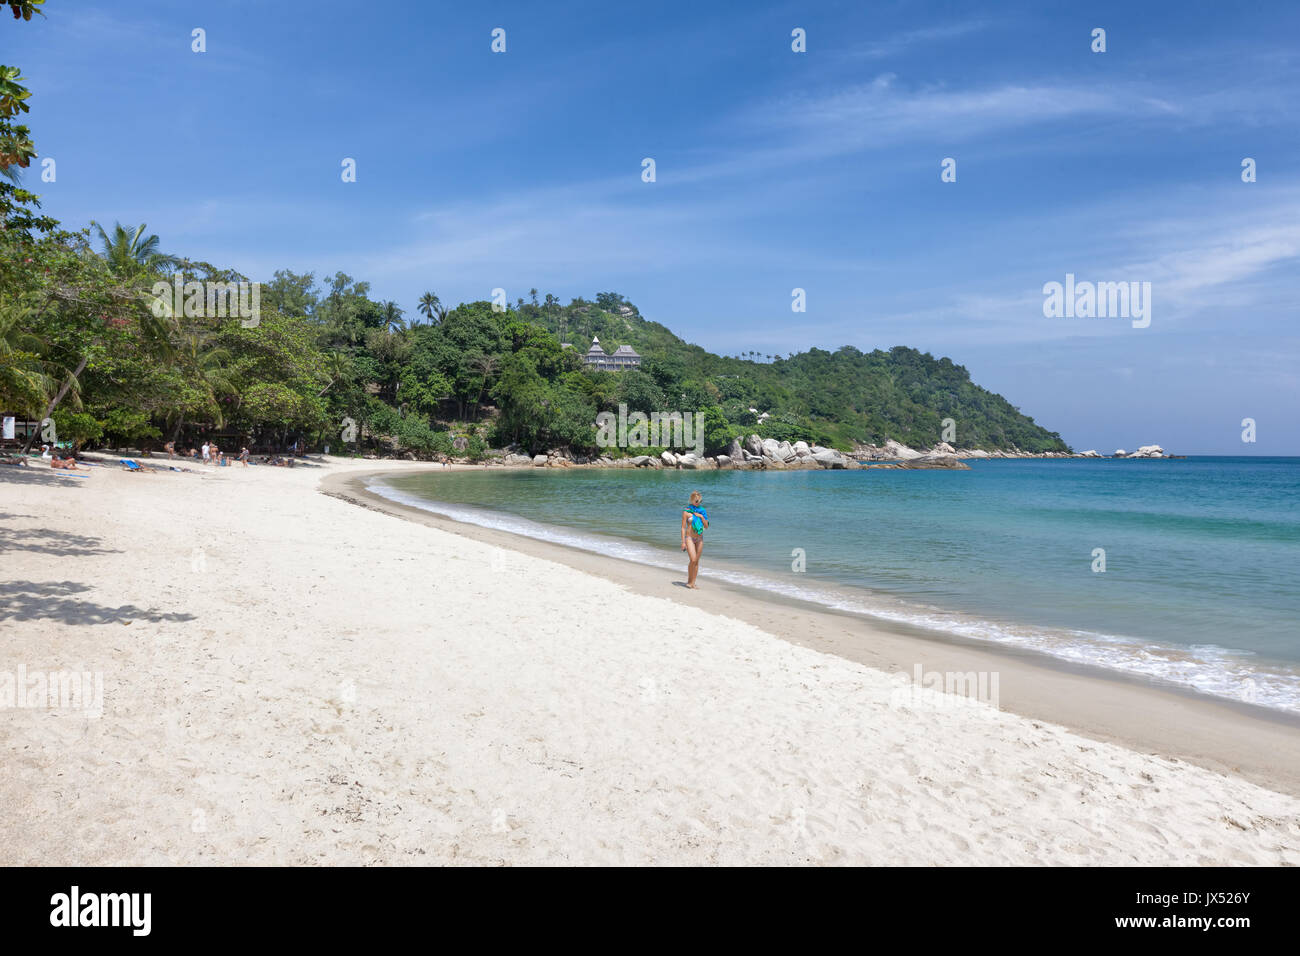 92cb0640a5d3 Thailand Island Walking Woman Stock Photos   Thailand Island Walking ...